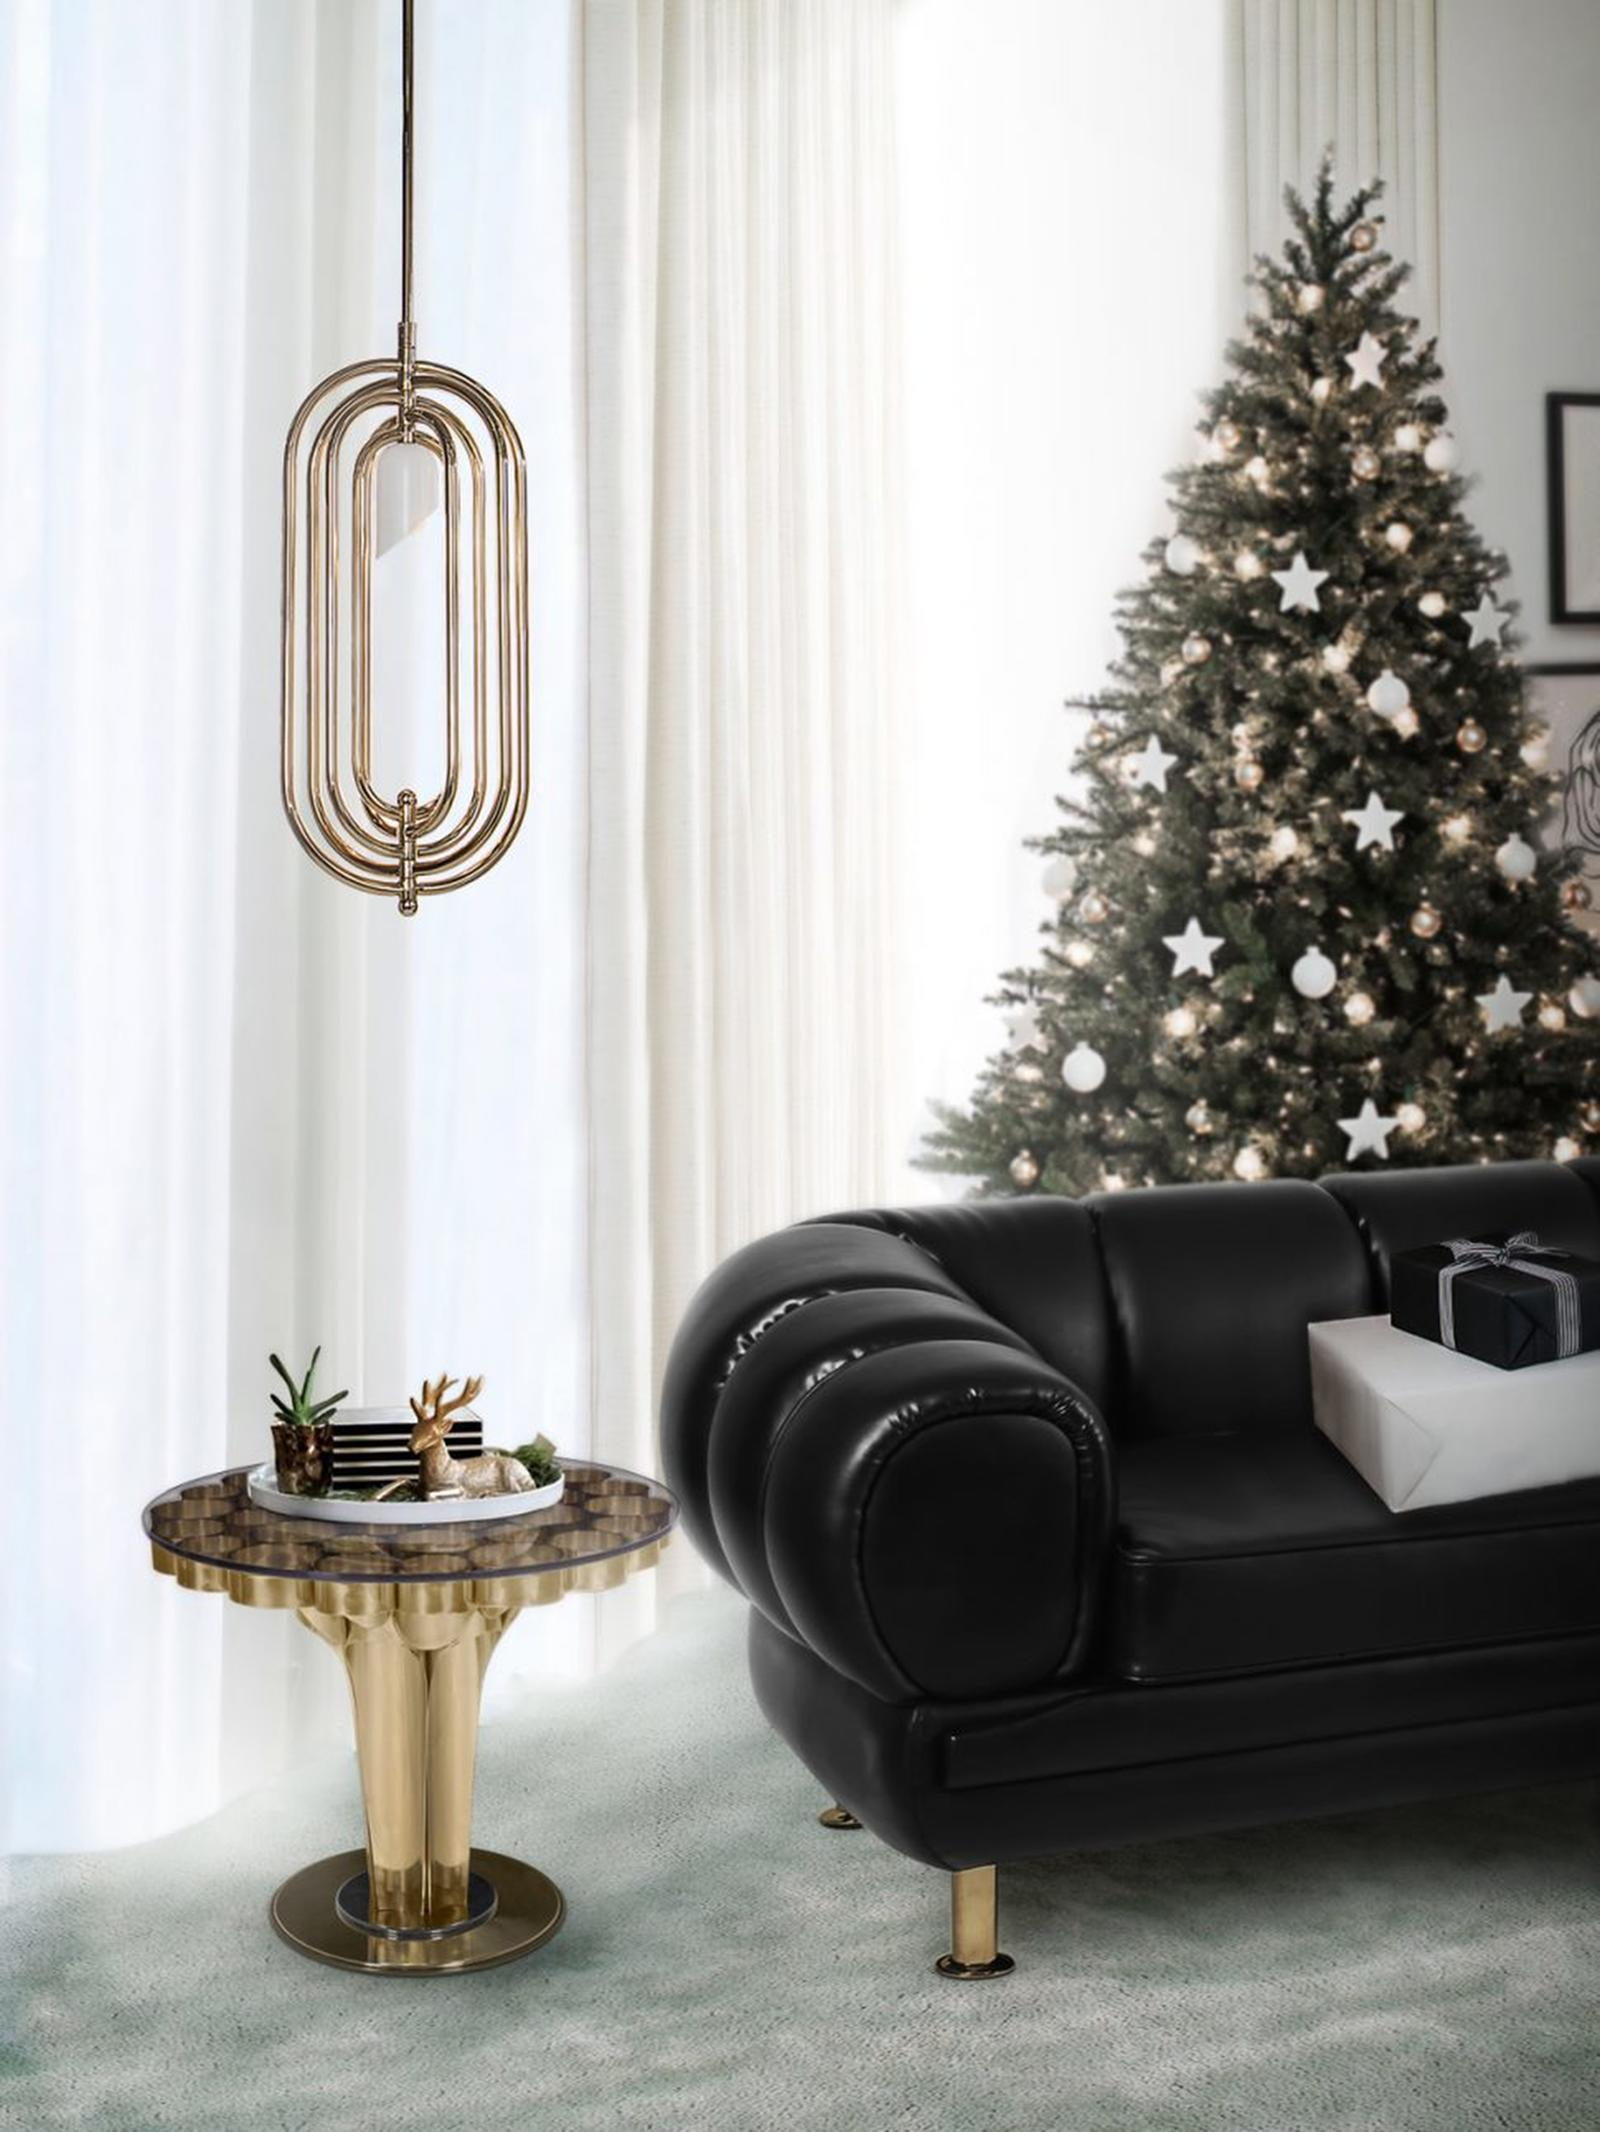 Learn How To Get The Perfect Christmas Eve Vibe With Our Decor Ideas 7 Christmas Eve Vibe Learn How To Get The Perfect Christmas Eve Vibe With Our Decor Ideas Learn How To Get The Perfect Christmas Eve Vibe With Our Decor Ideas 7